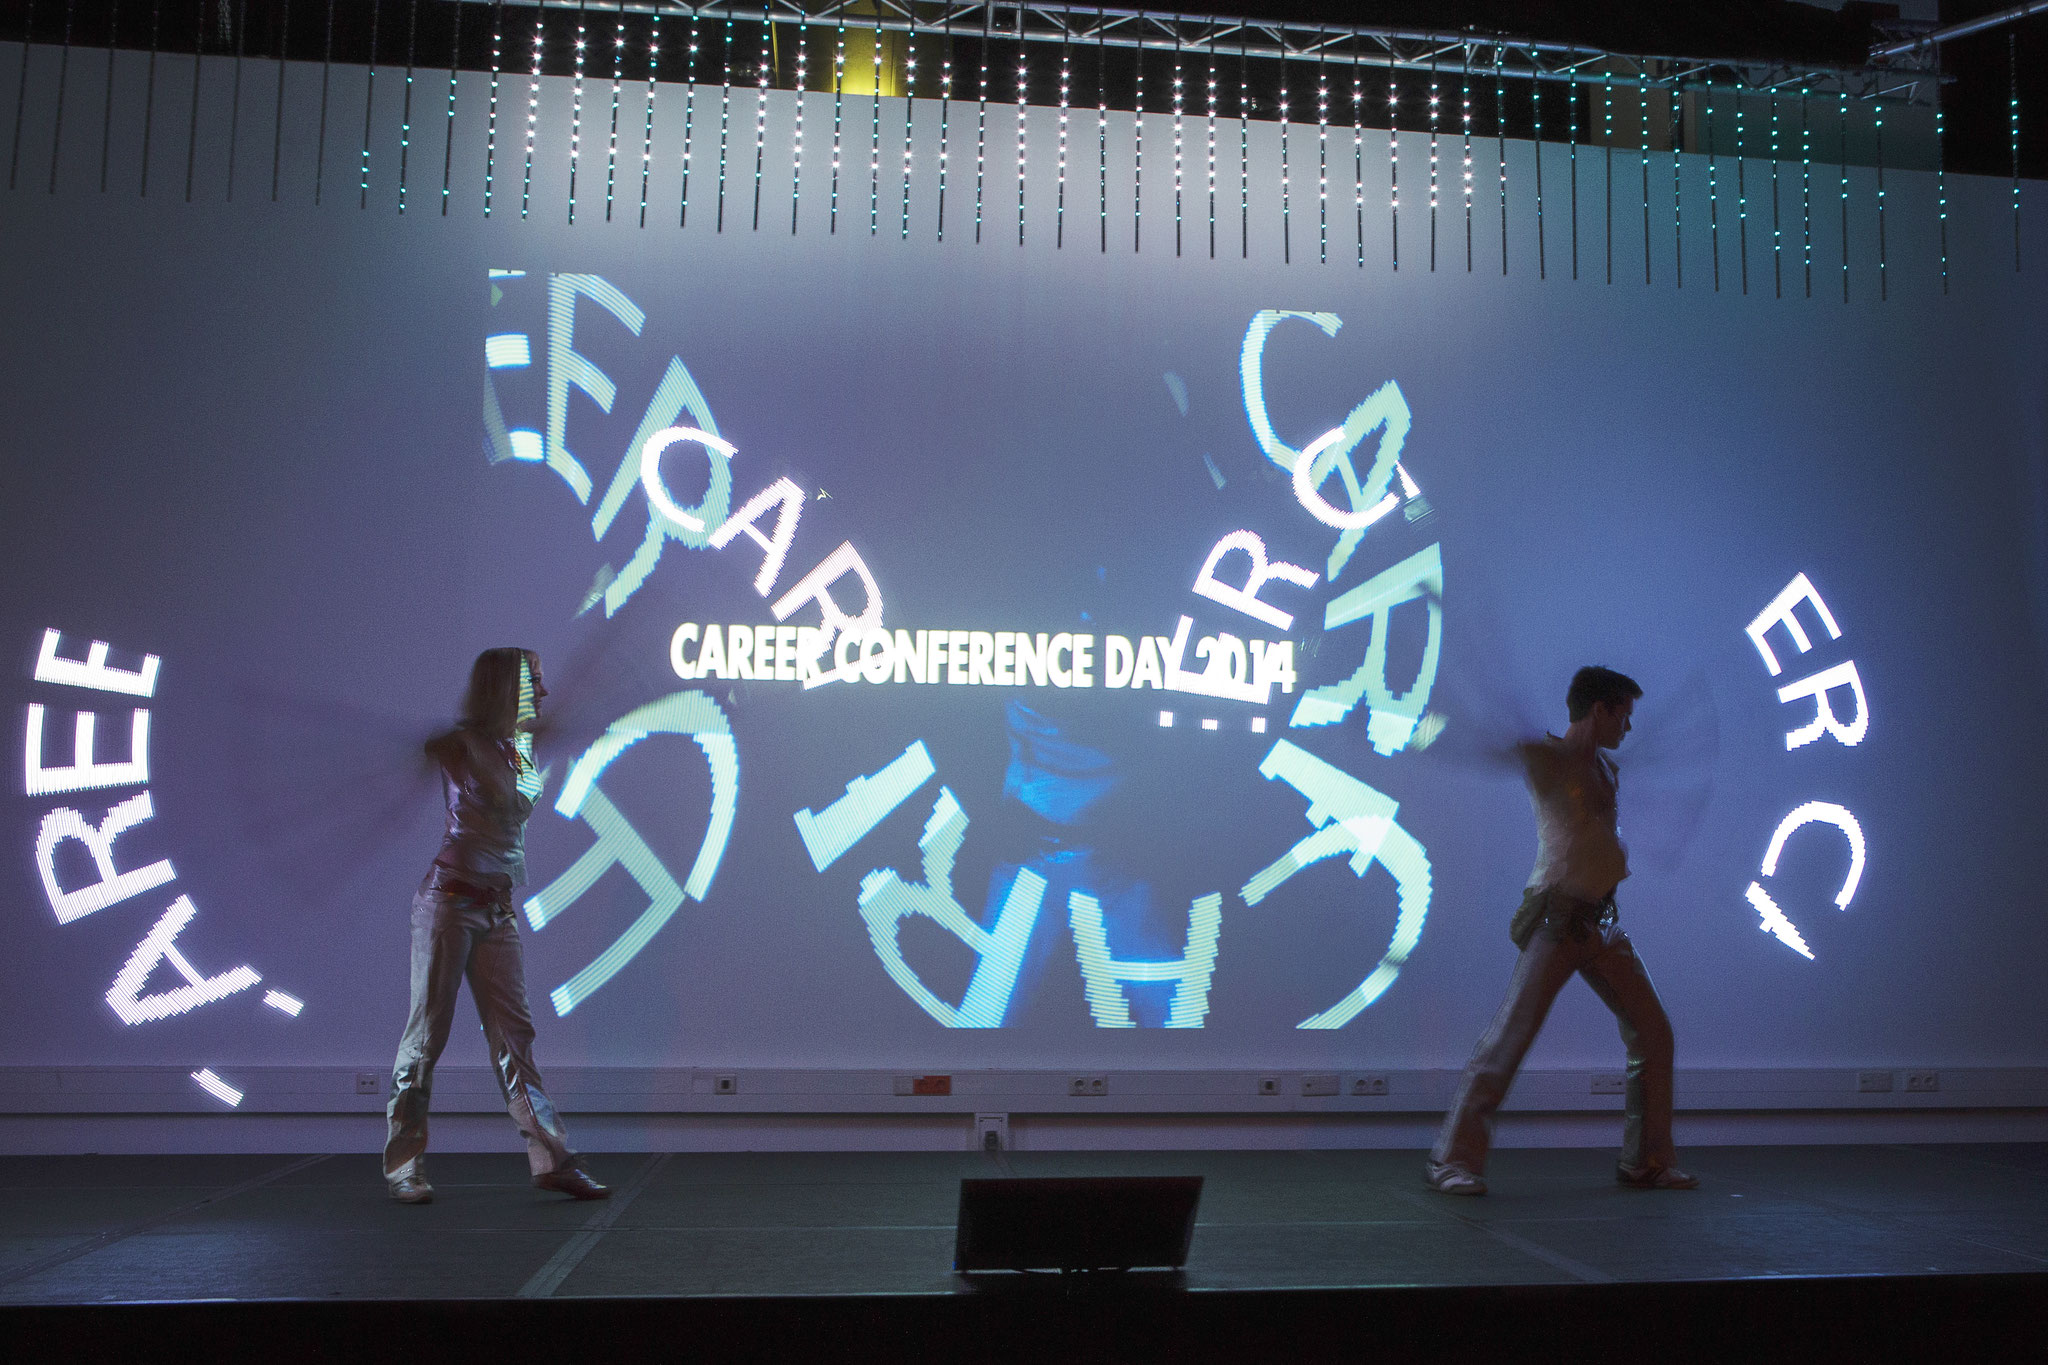 Career Conference Day in Ahoy | © EuroCollege